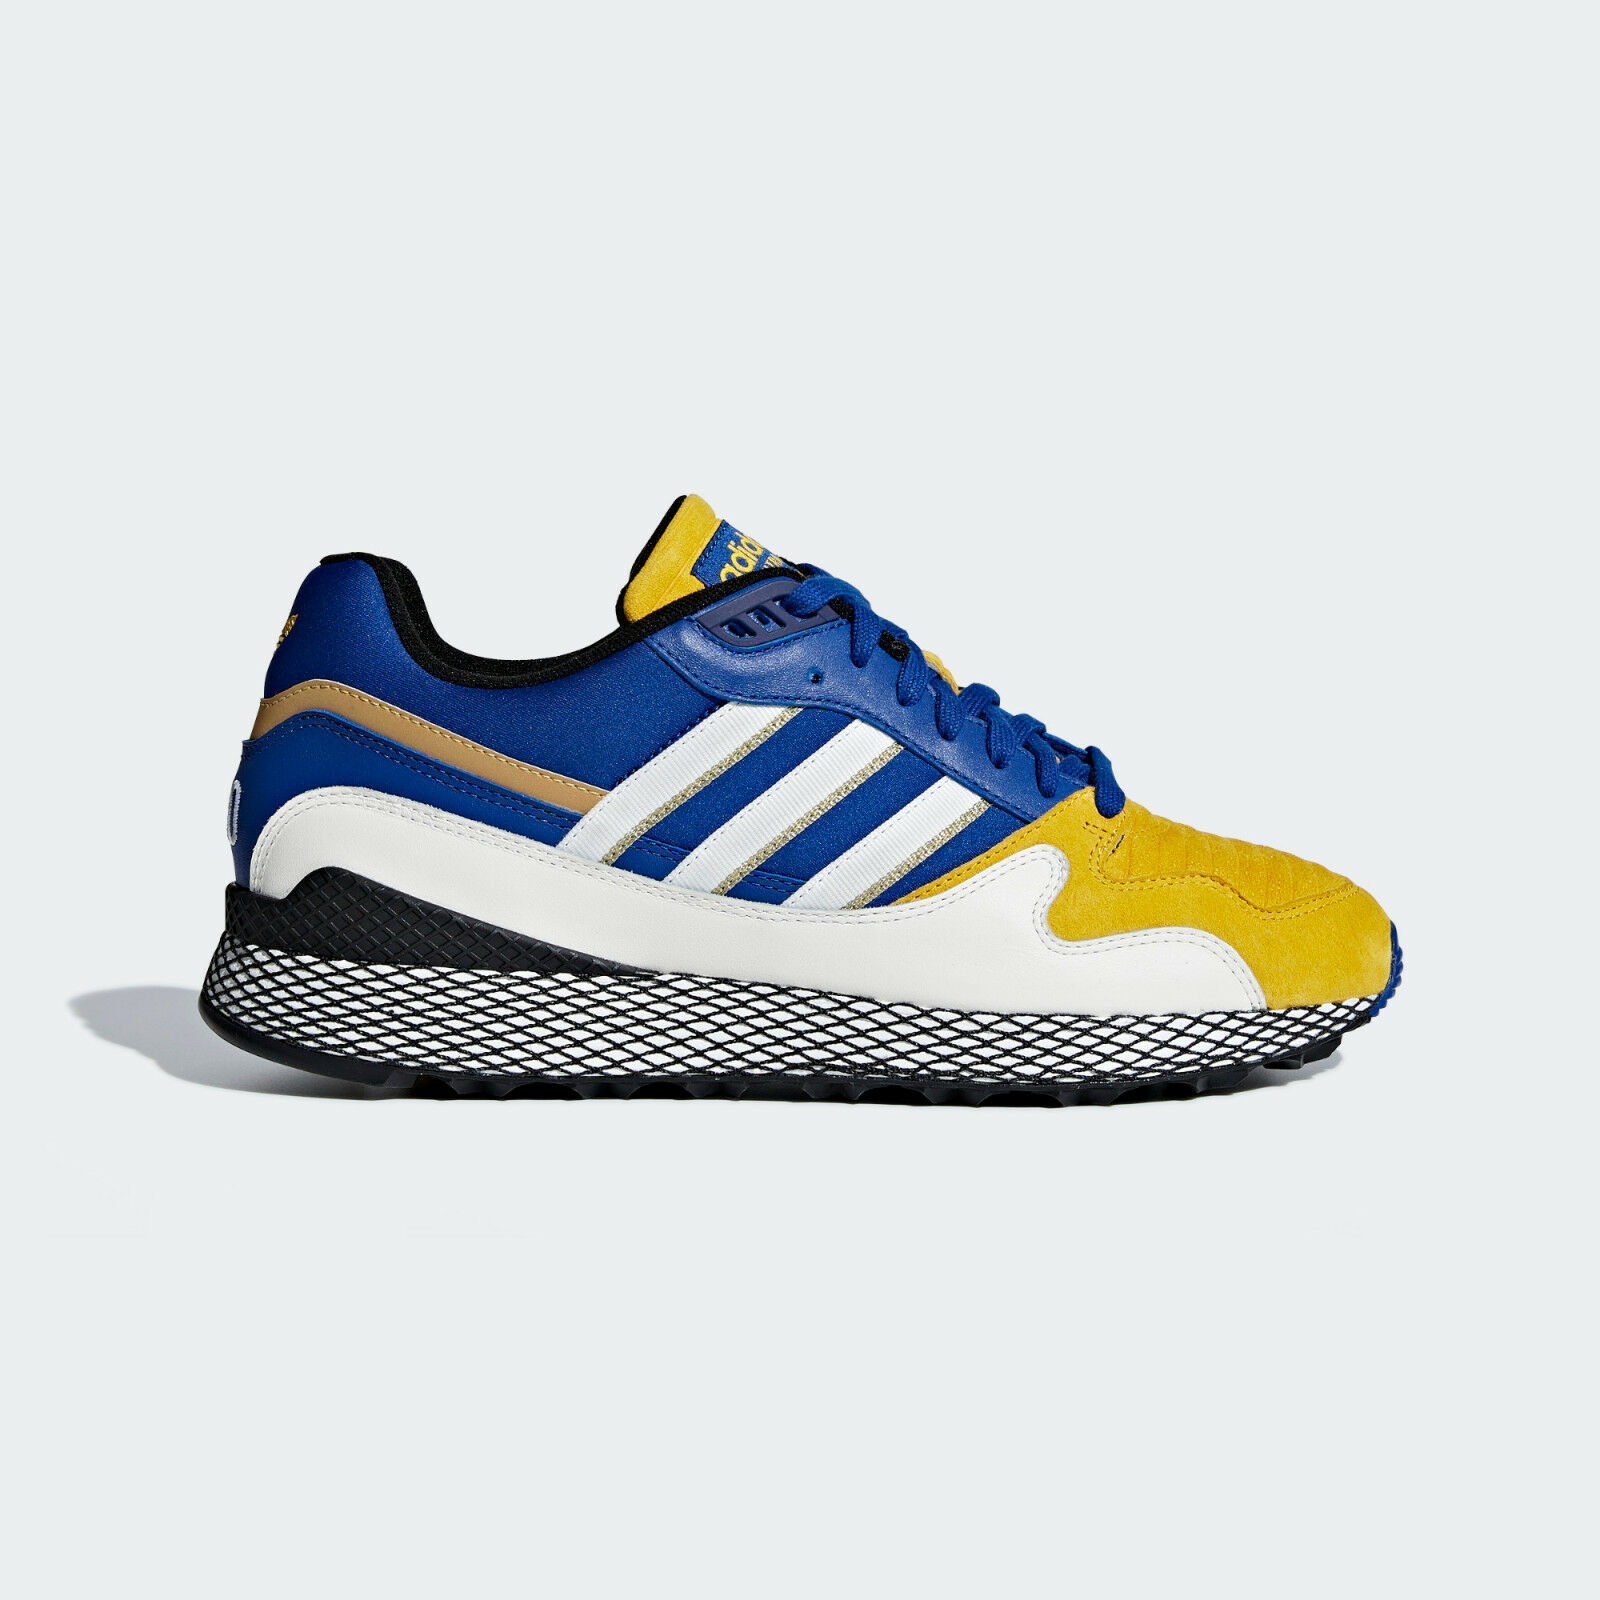 Adidas Ultra Tech Dragon Ball Z Size US 9.5 Vegeta Royal bluee Yellow gold D97054